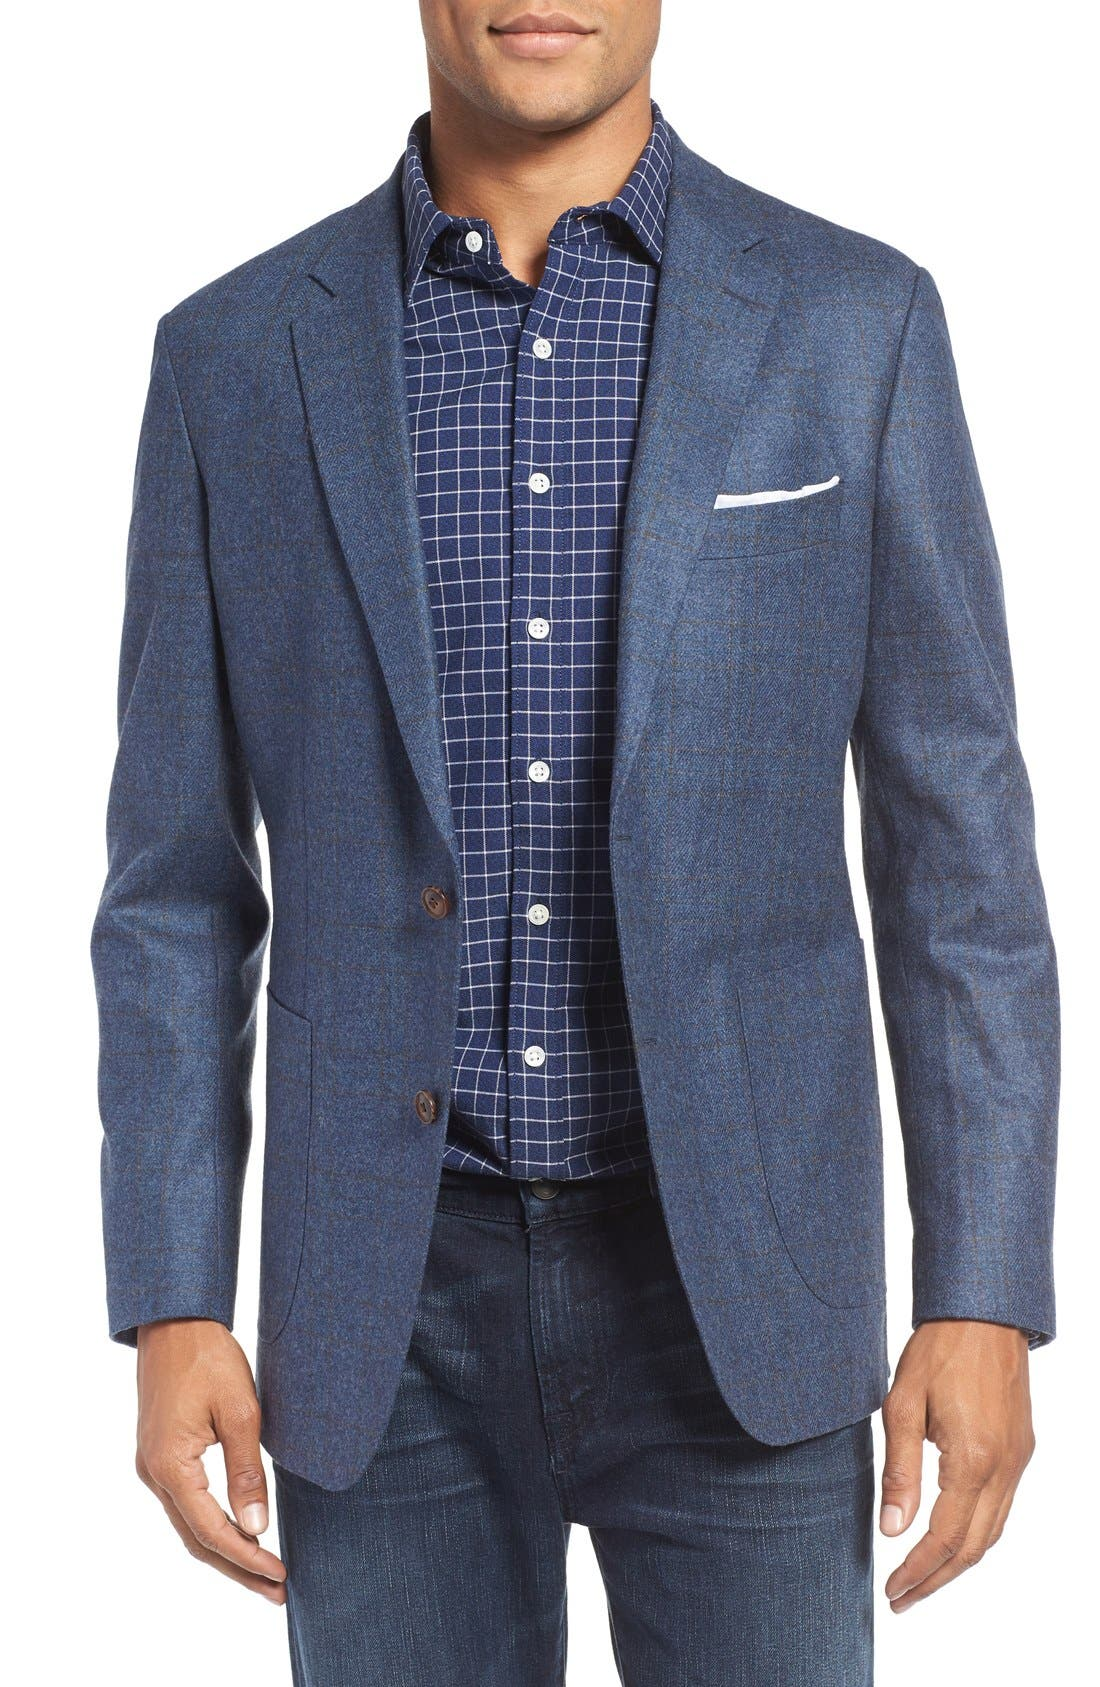 Main Image - Rodd & Gunn 'Clareinch' Herringbone Plaid Sport Coat